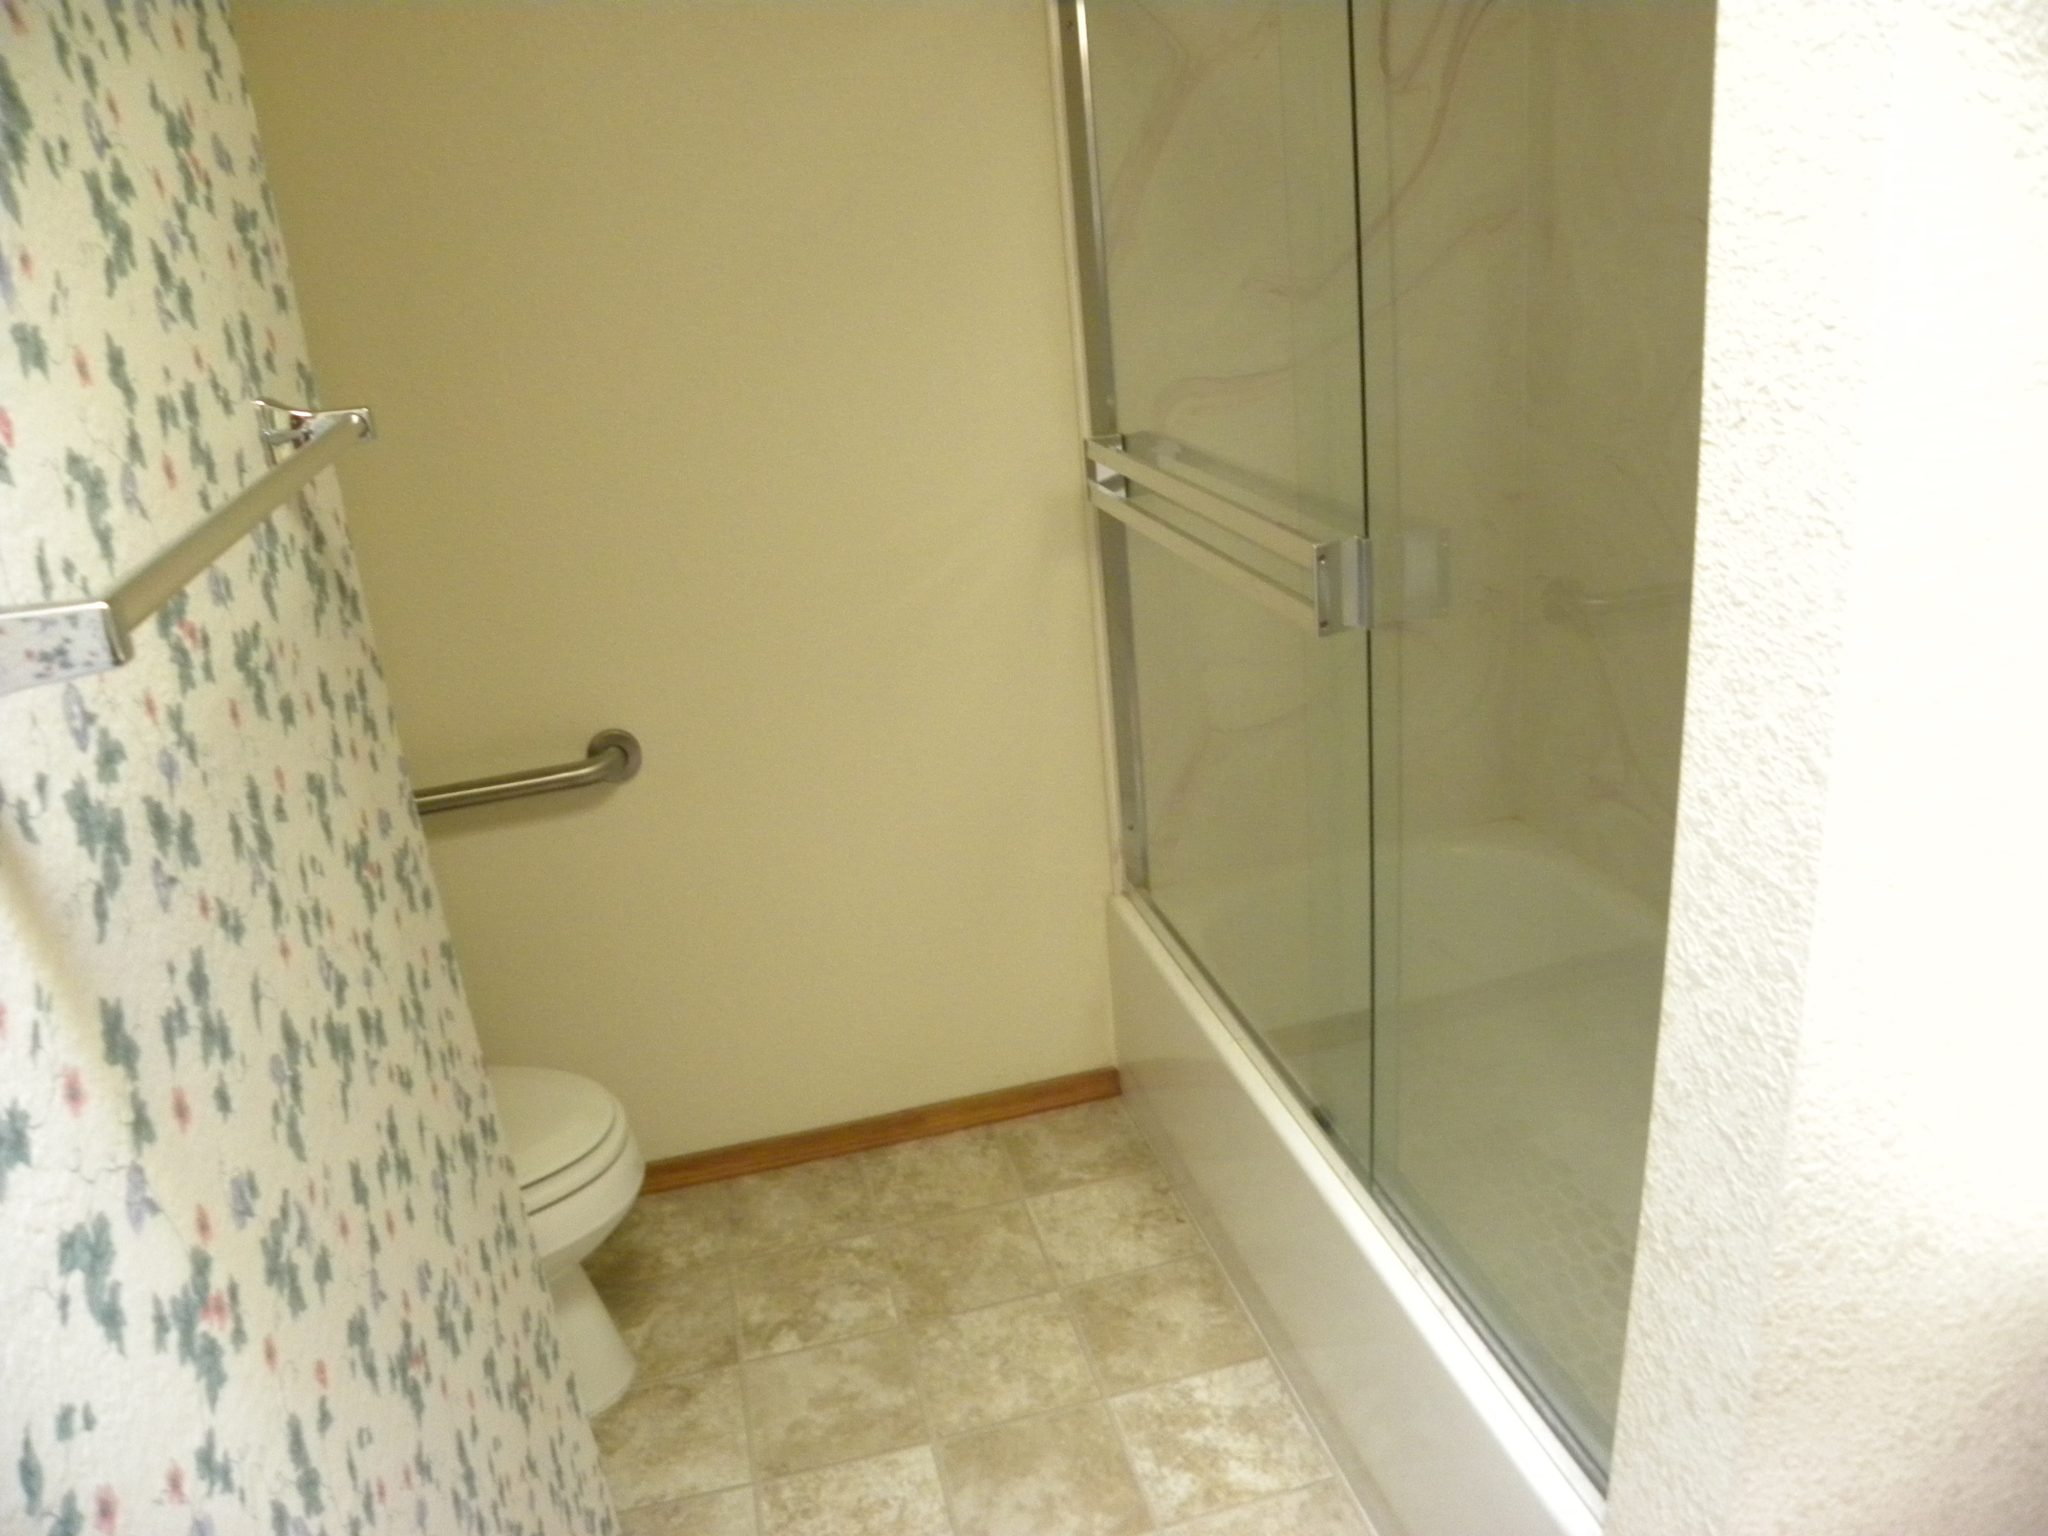 Interior shot of a residential bathroom that is ready to be remodeled